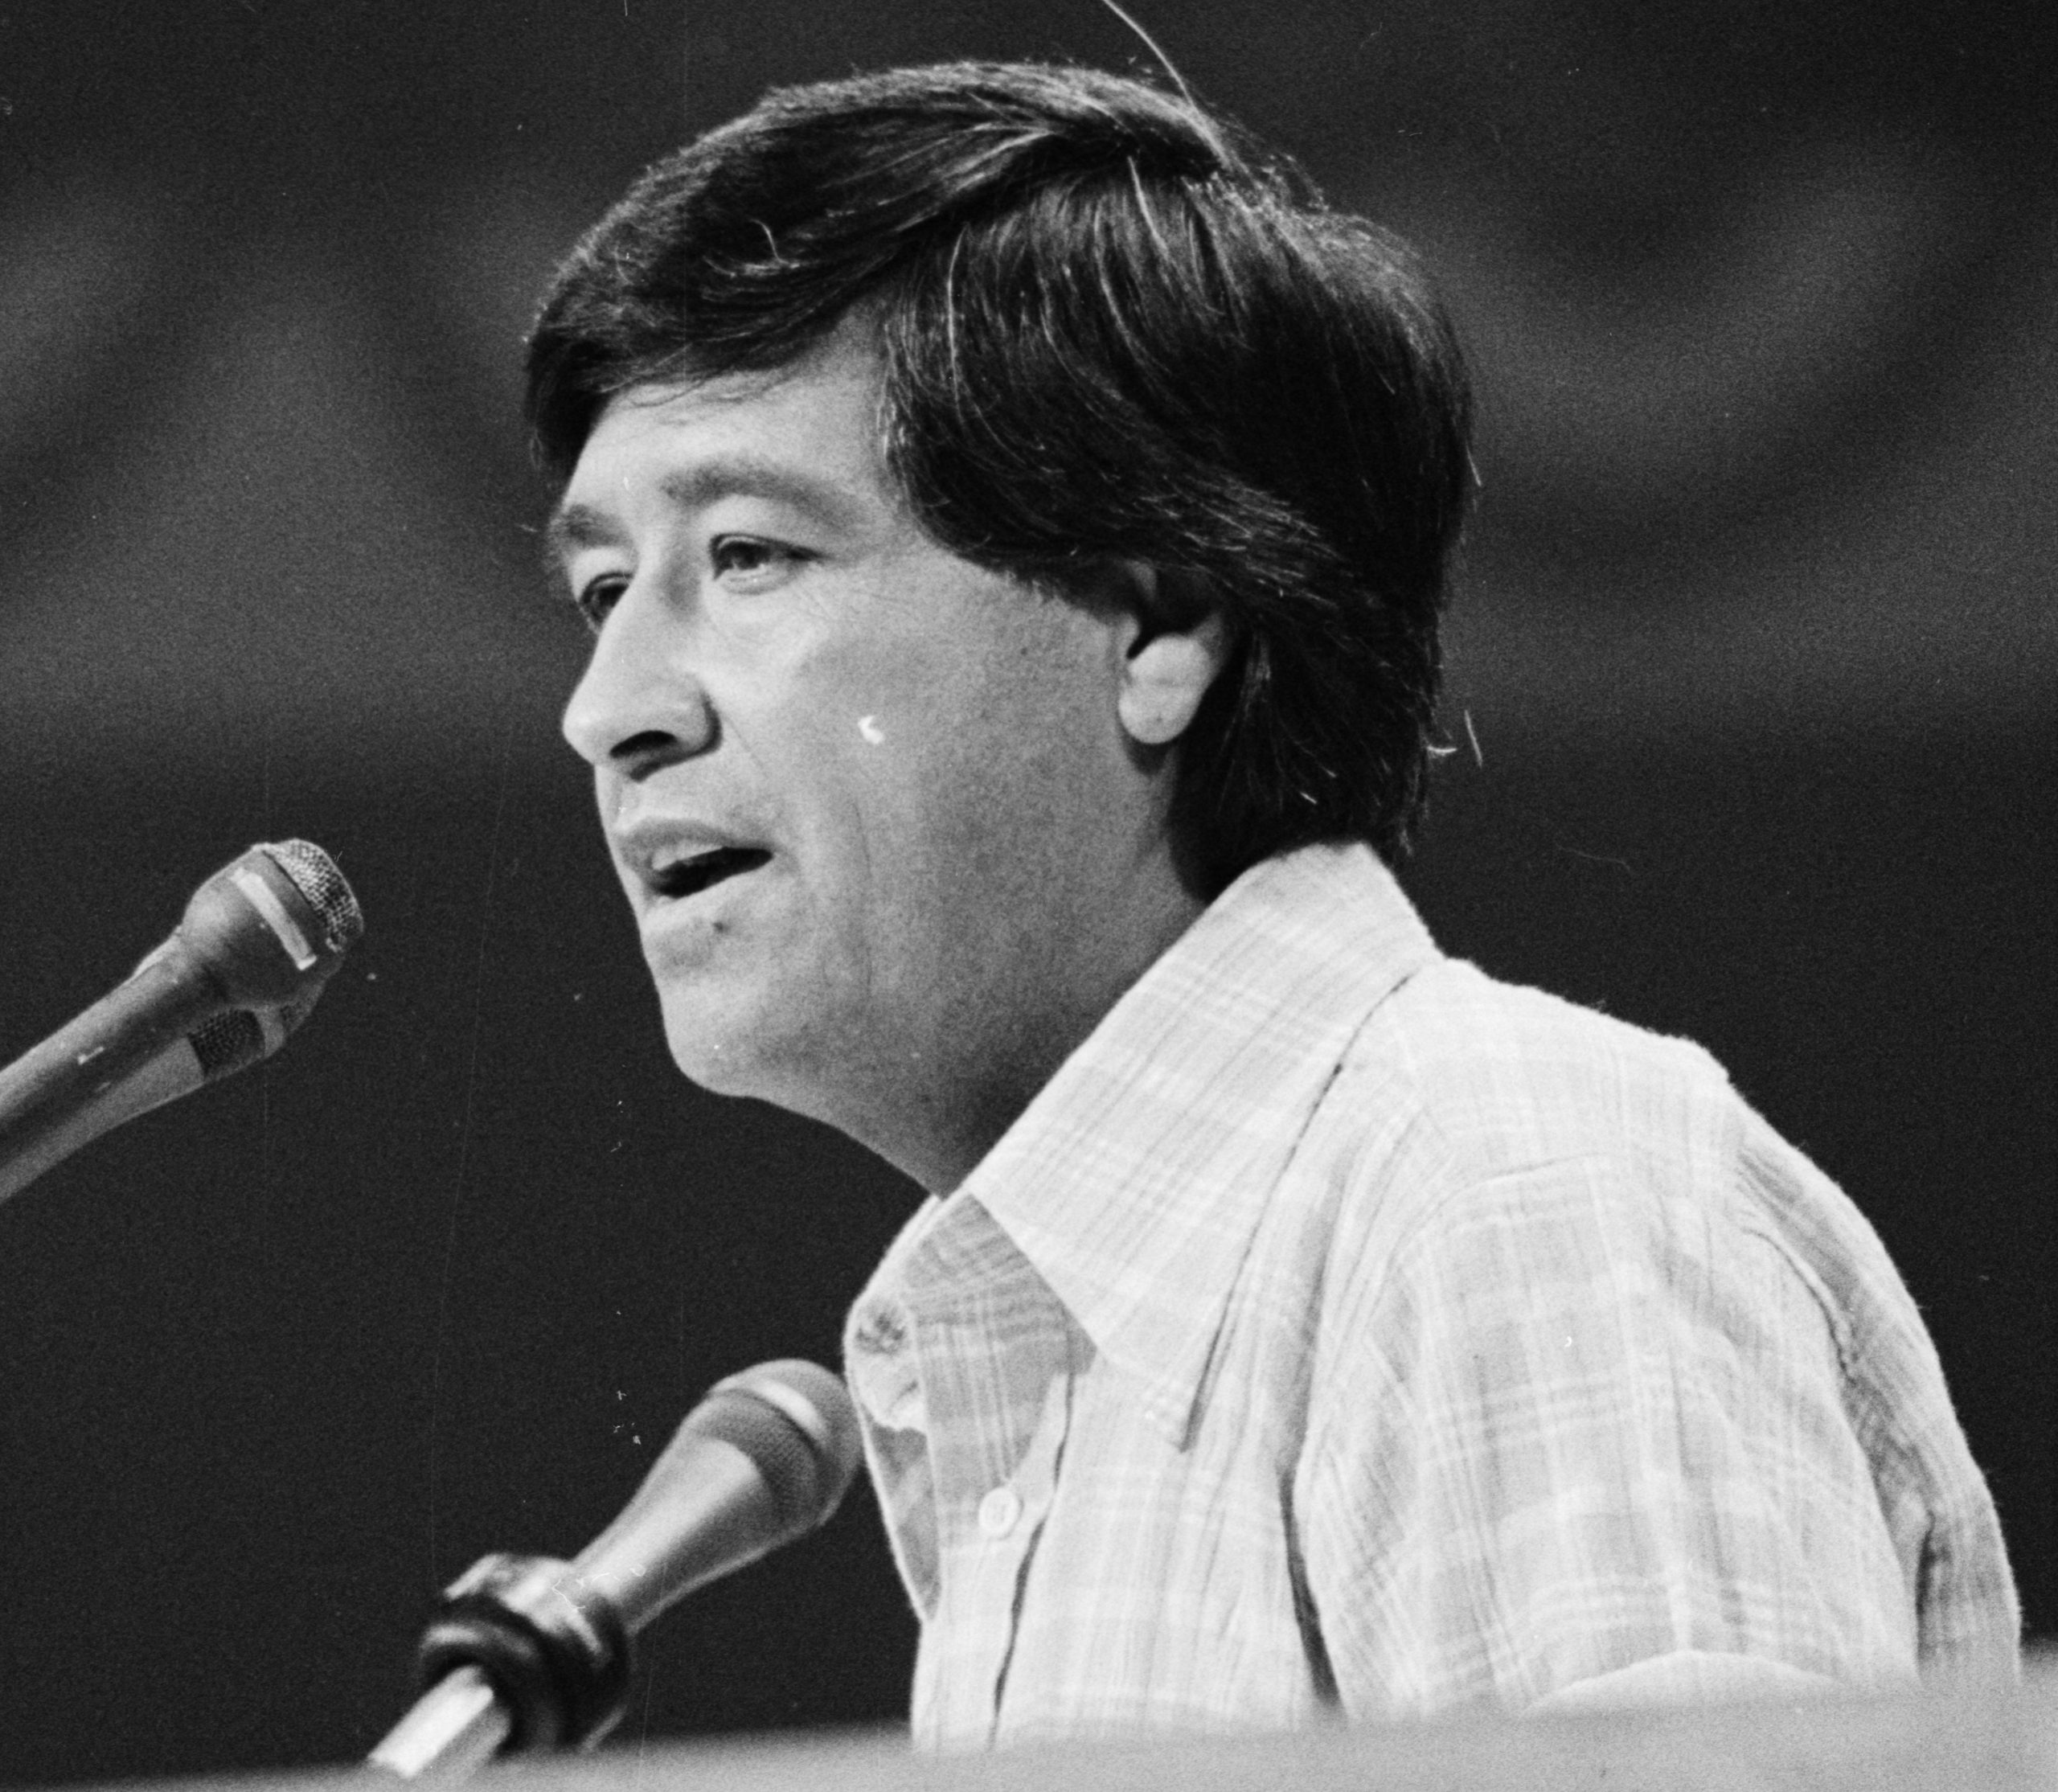 5 inspirational facts about César Chávez - The Rocky Mountain Collegian